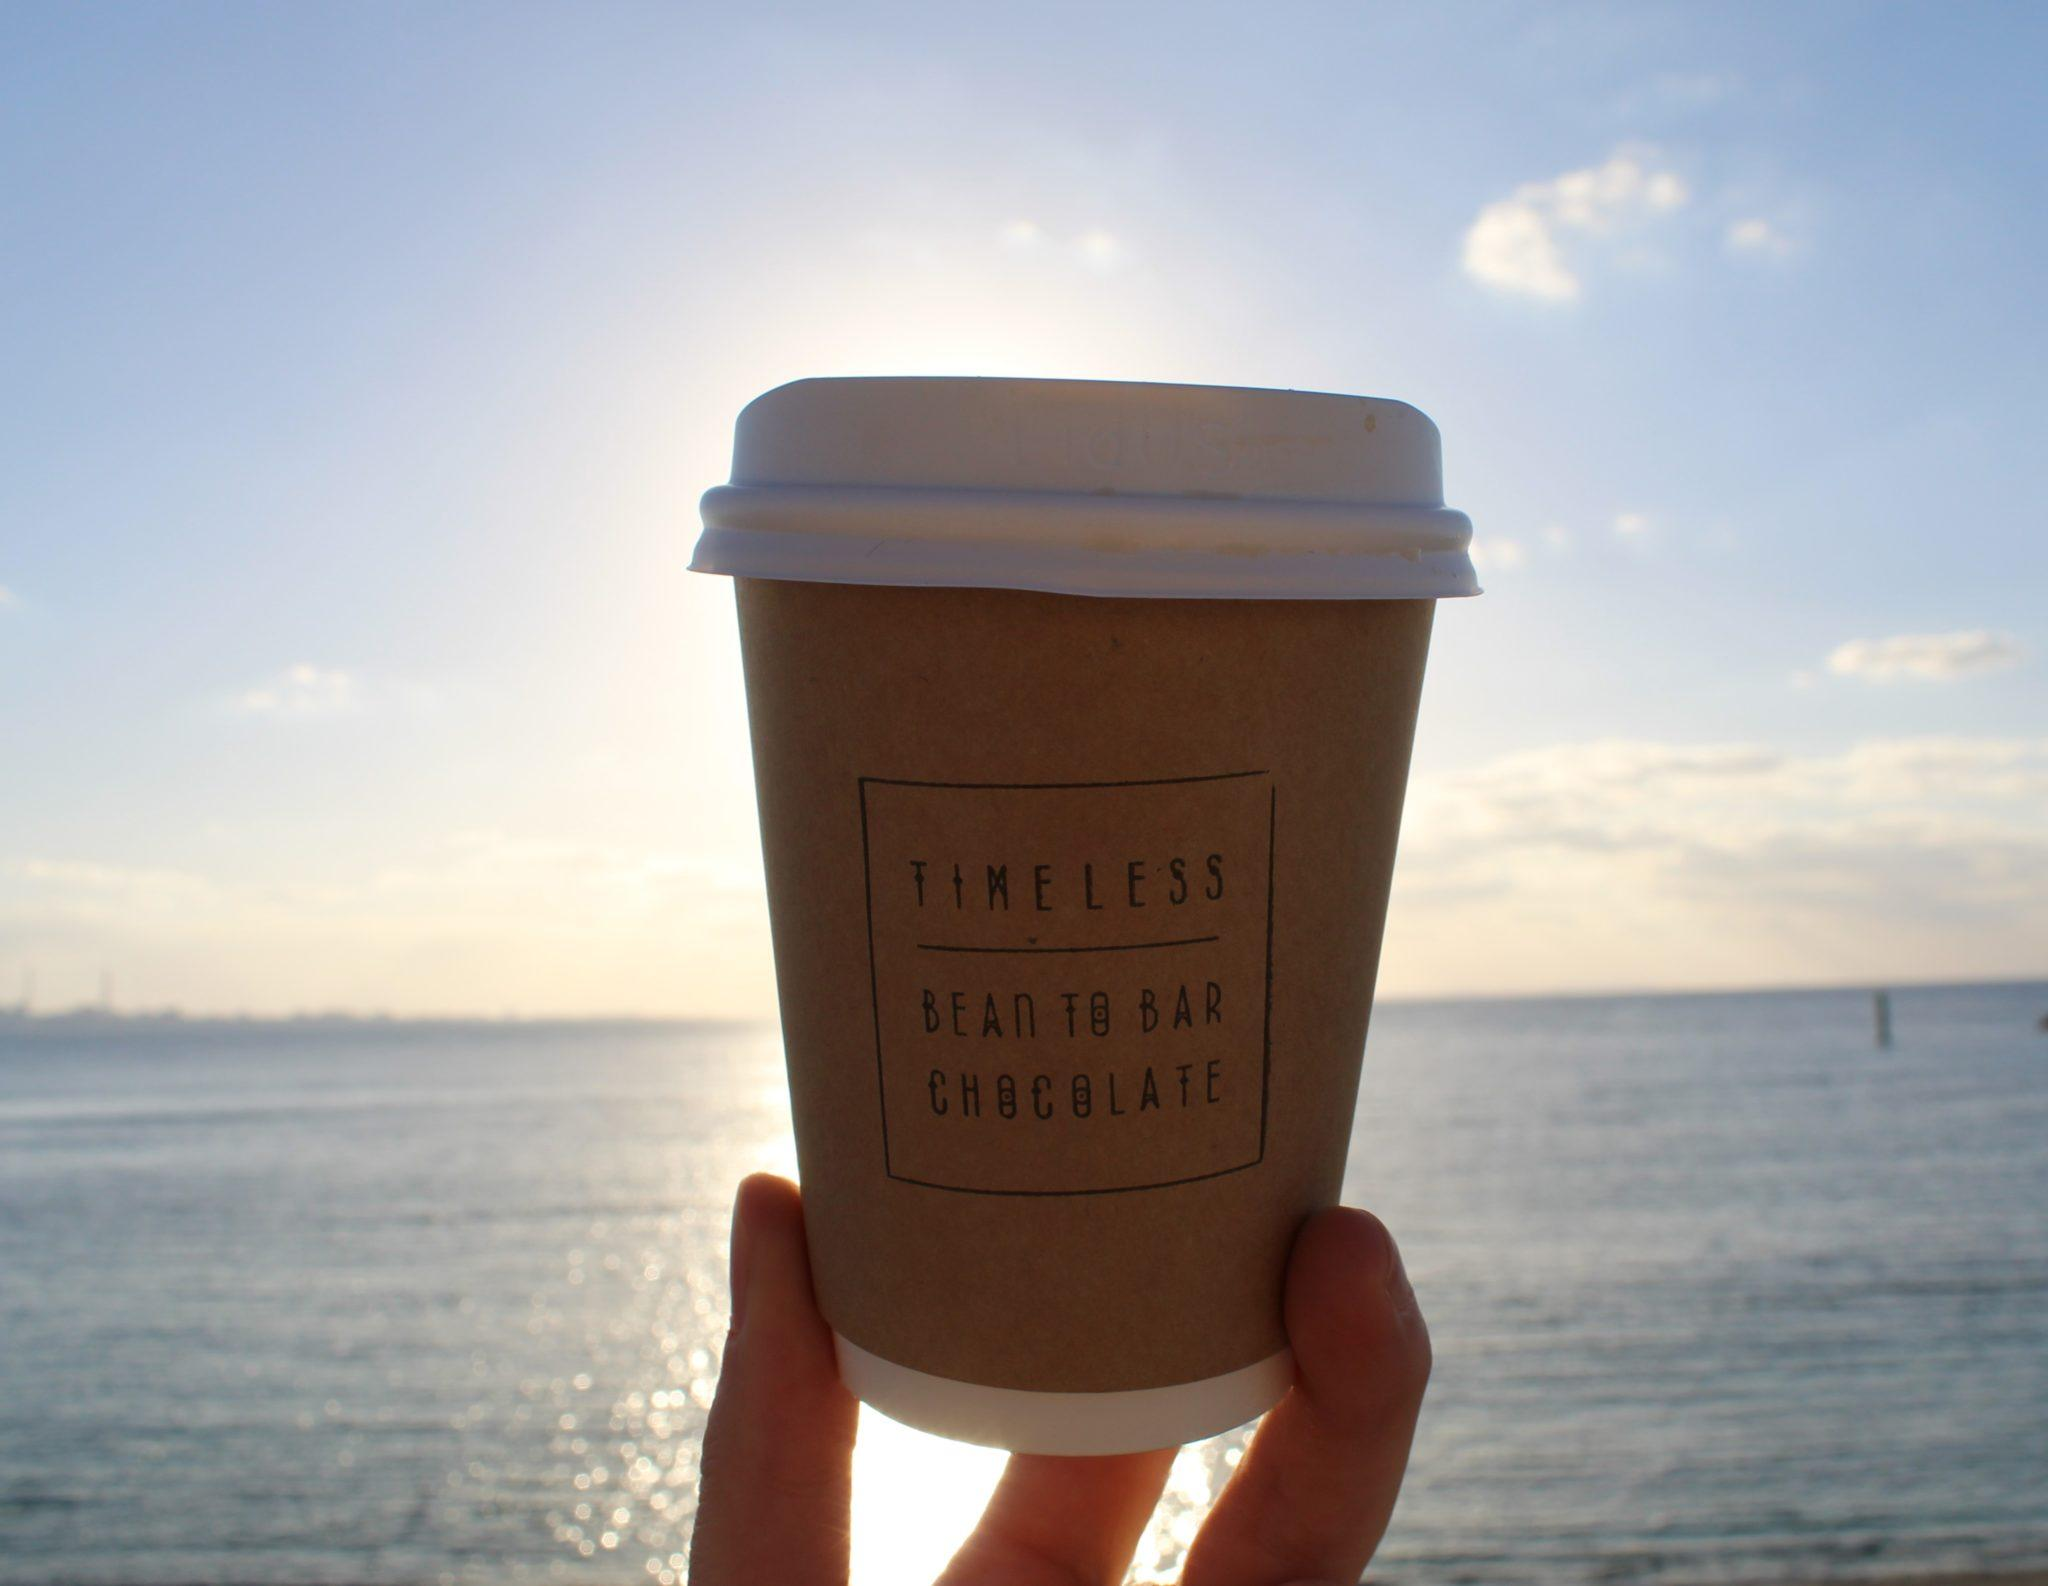 timeless chocolate okinawa japan cup of chai tea